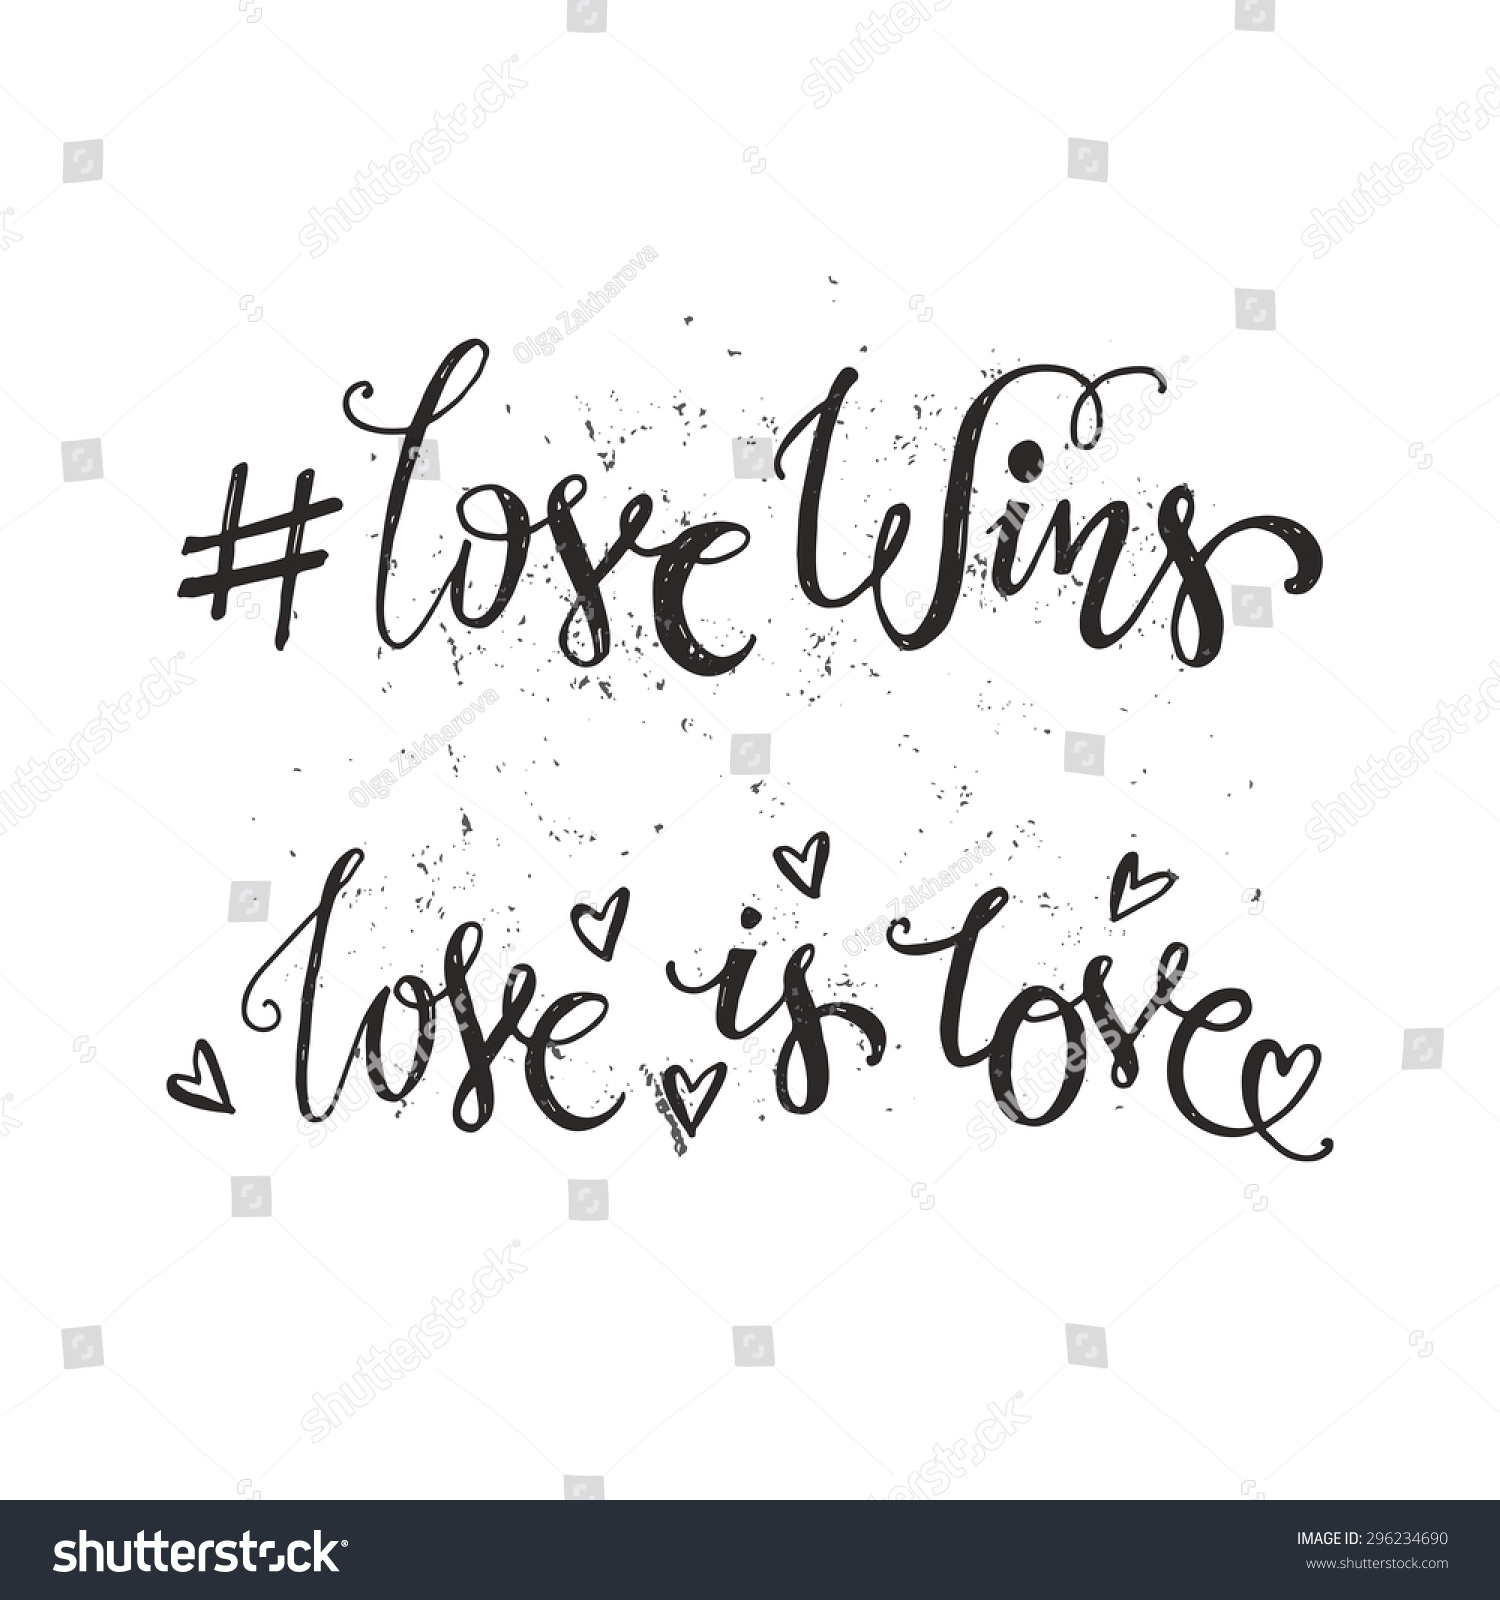 Quotes About Love Lgbt : Handdrawn quotes - Love Wins and Love is Love. LGBT community design ...